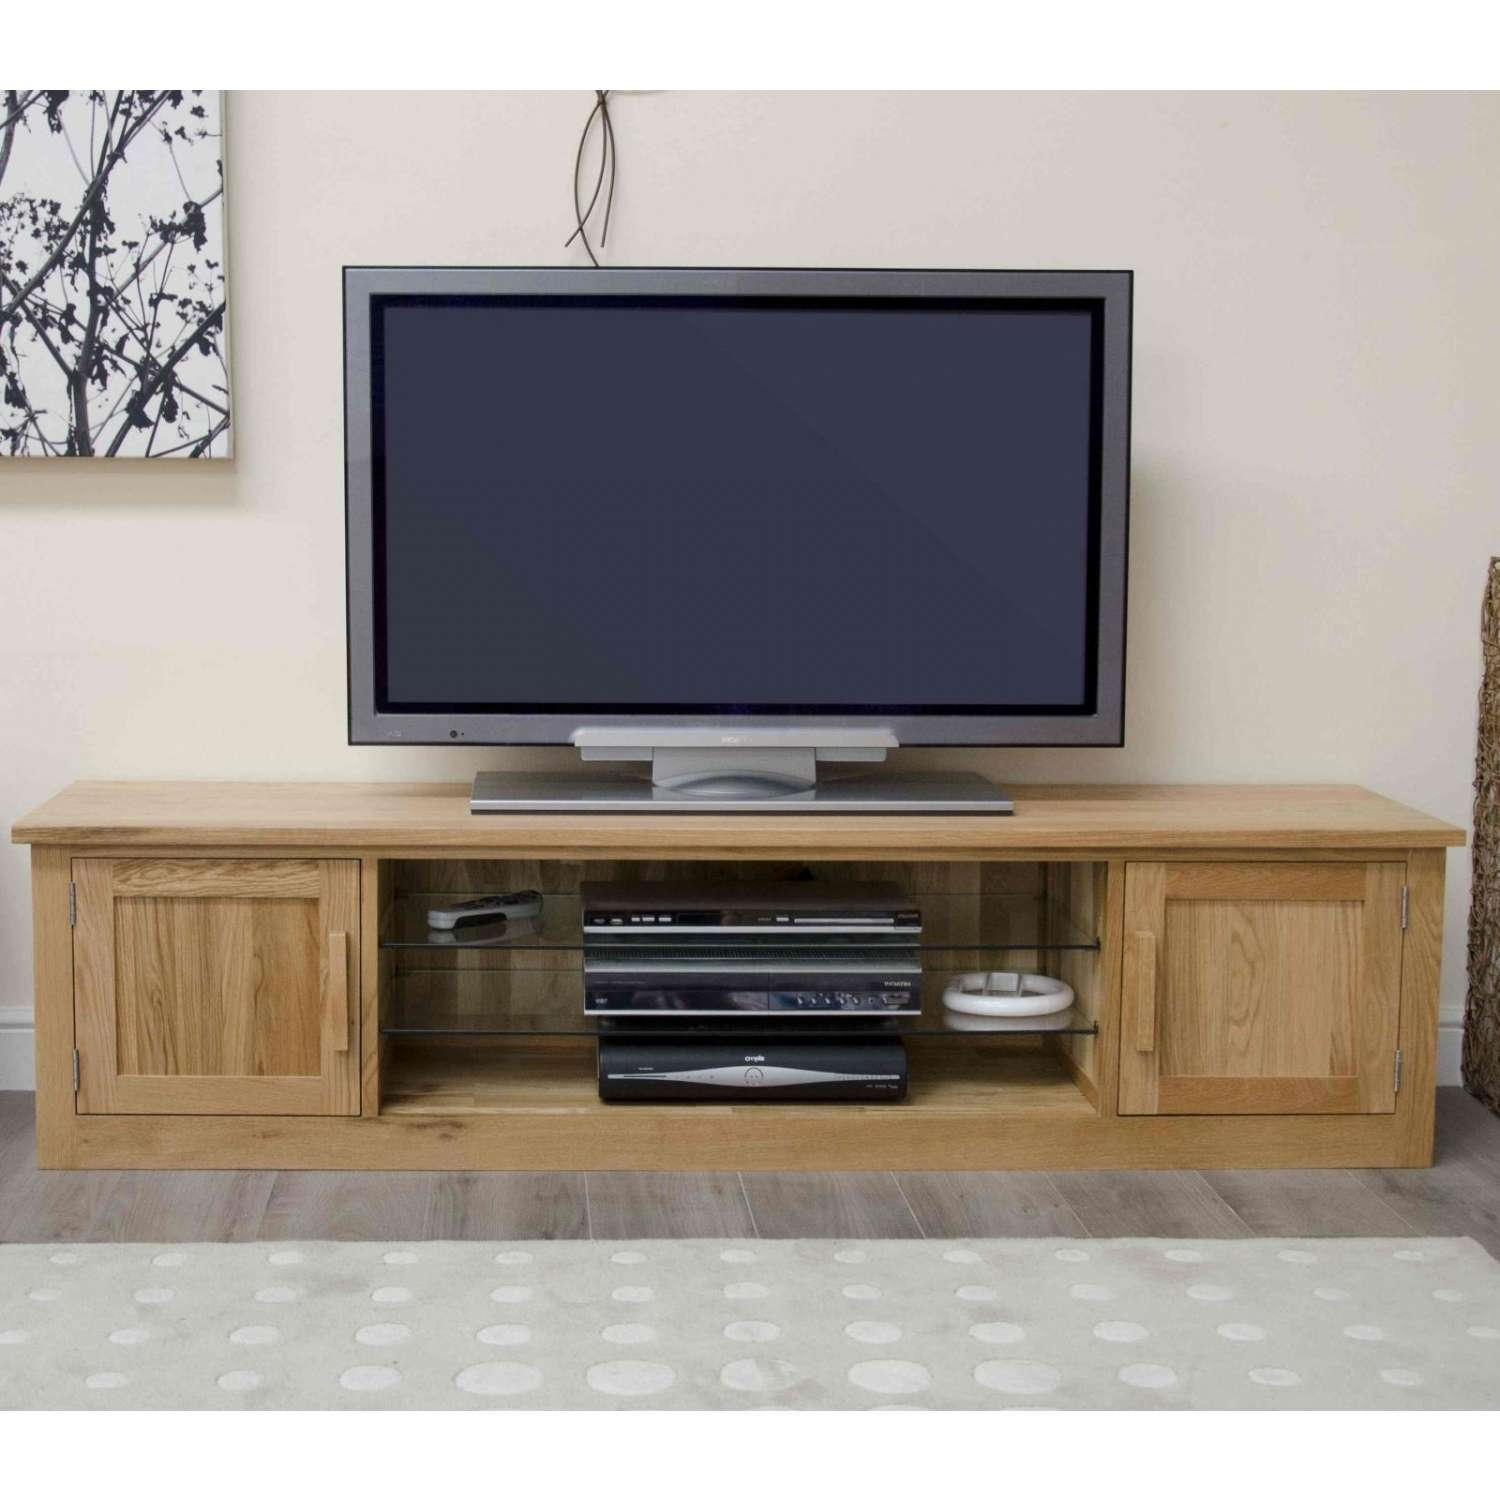 Arden Solid Oak Living Room Furniture Large Widescreen Tv Cabinet Inside Rustic Wood Tv Cabinets (View 1 of 20)